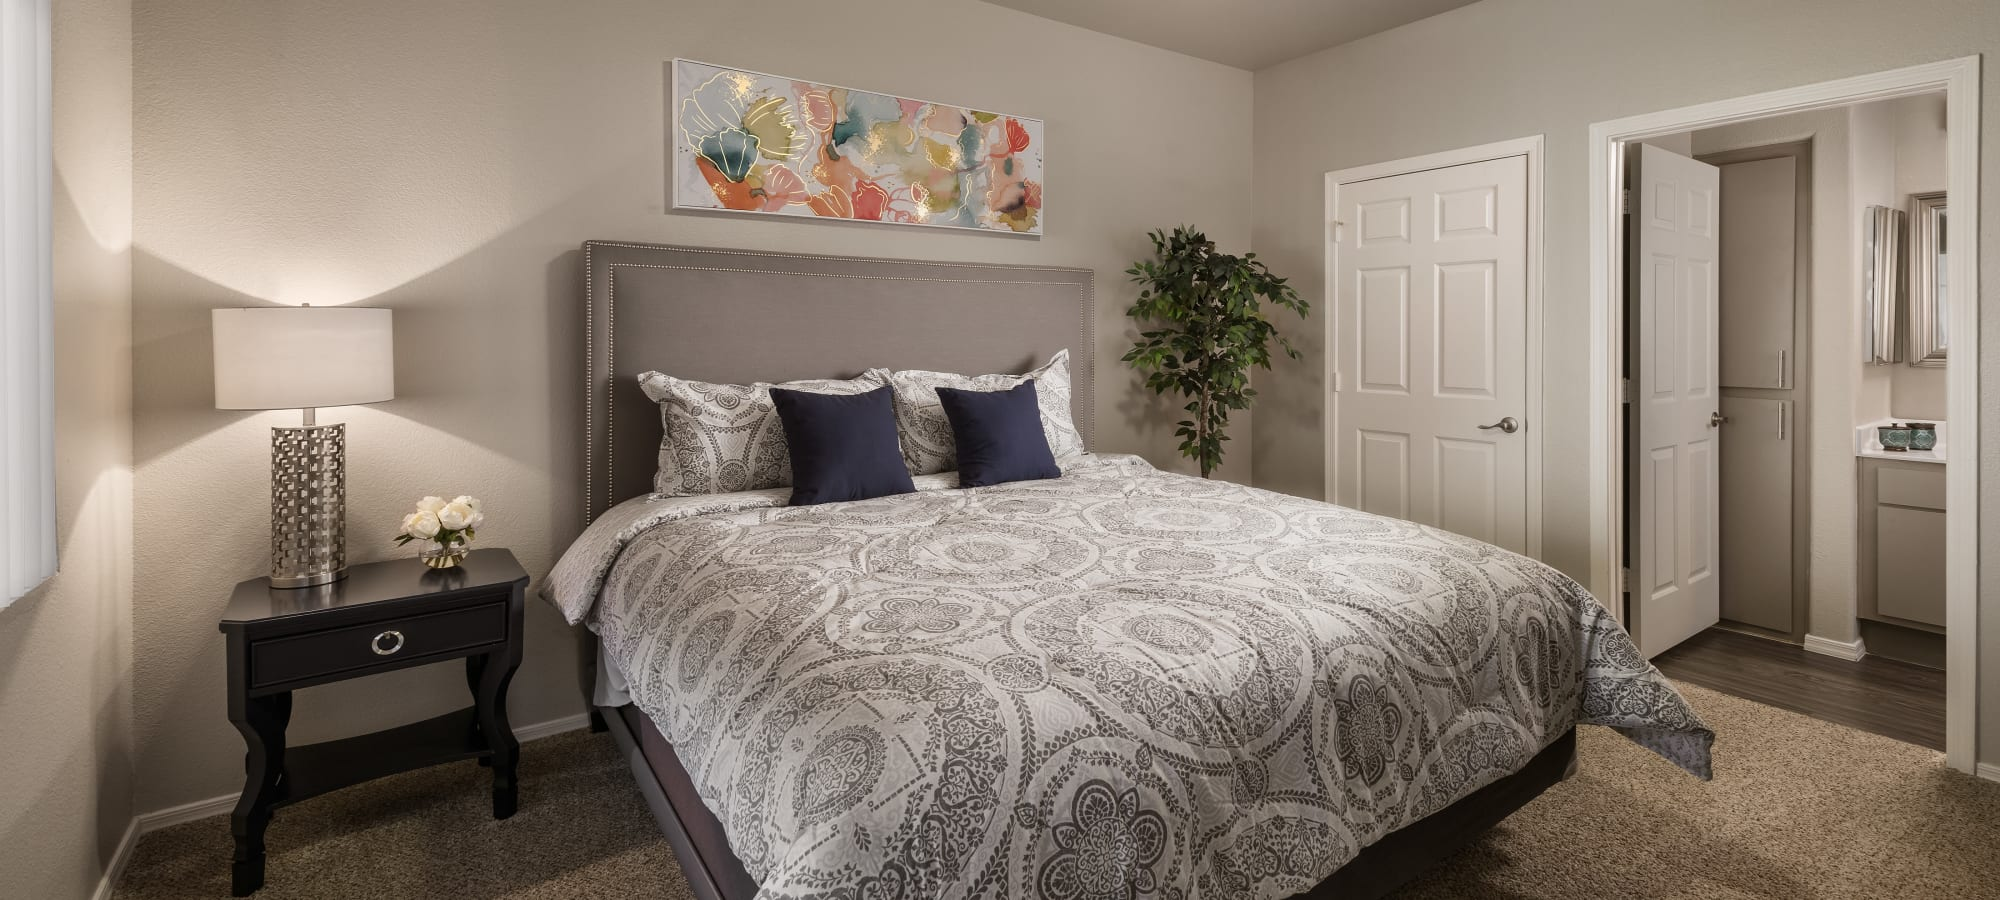 Bedroom with walk-in closets in model home at Bellagio in Scottsdale, Arizona